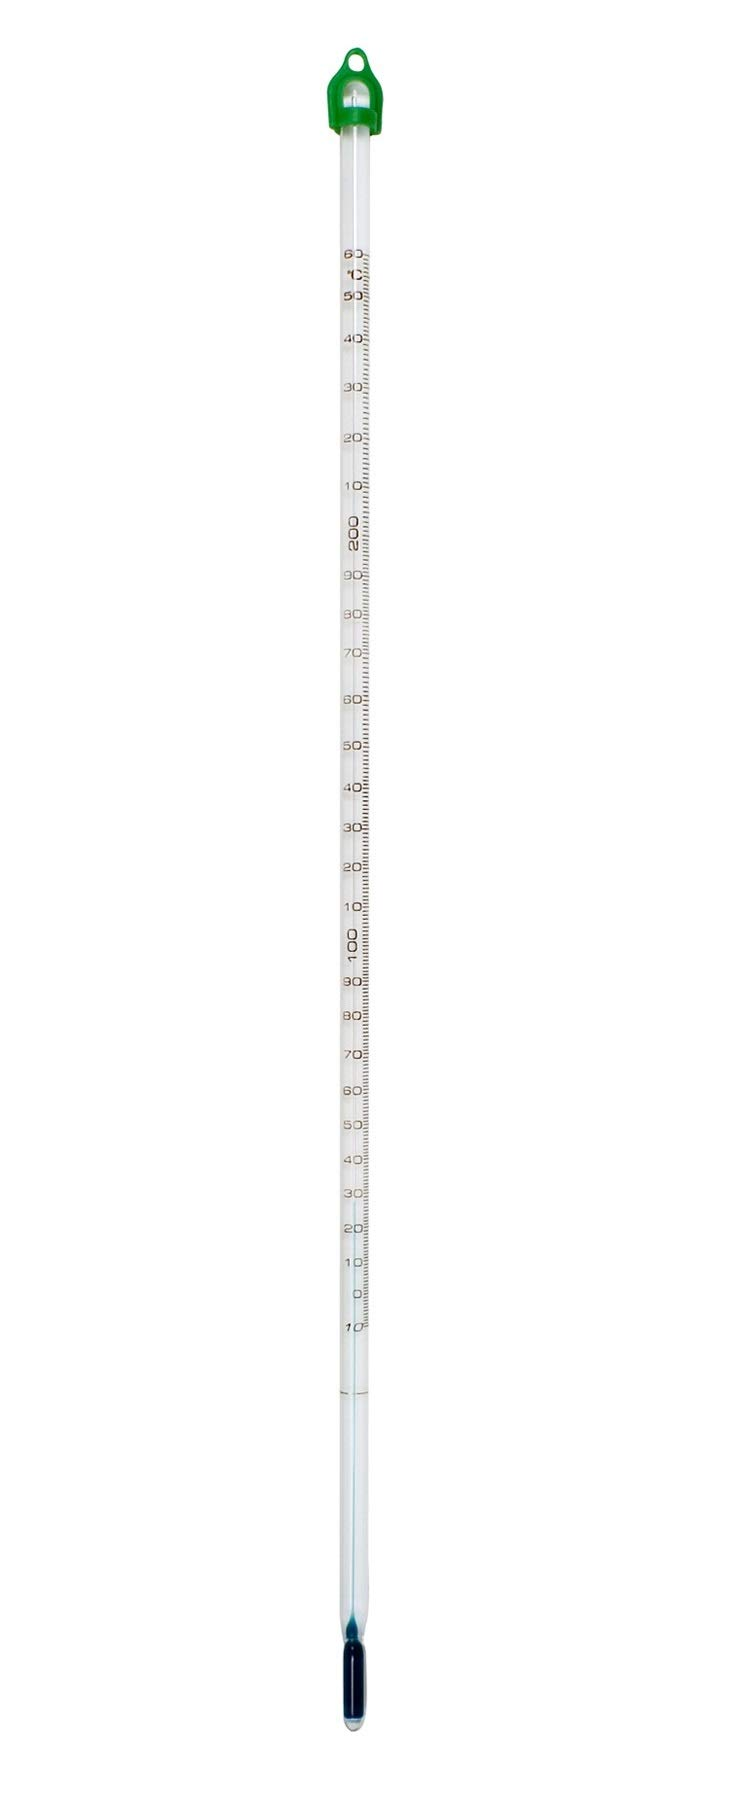 H-B Enviro-Safe General Purpose Liquid-In-Glass Thermometer; -20 to 110C, 76mm Immersion, Environmentally Friendly (B60502-0100)